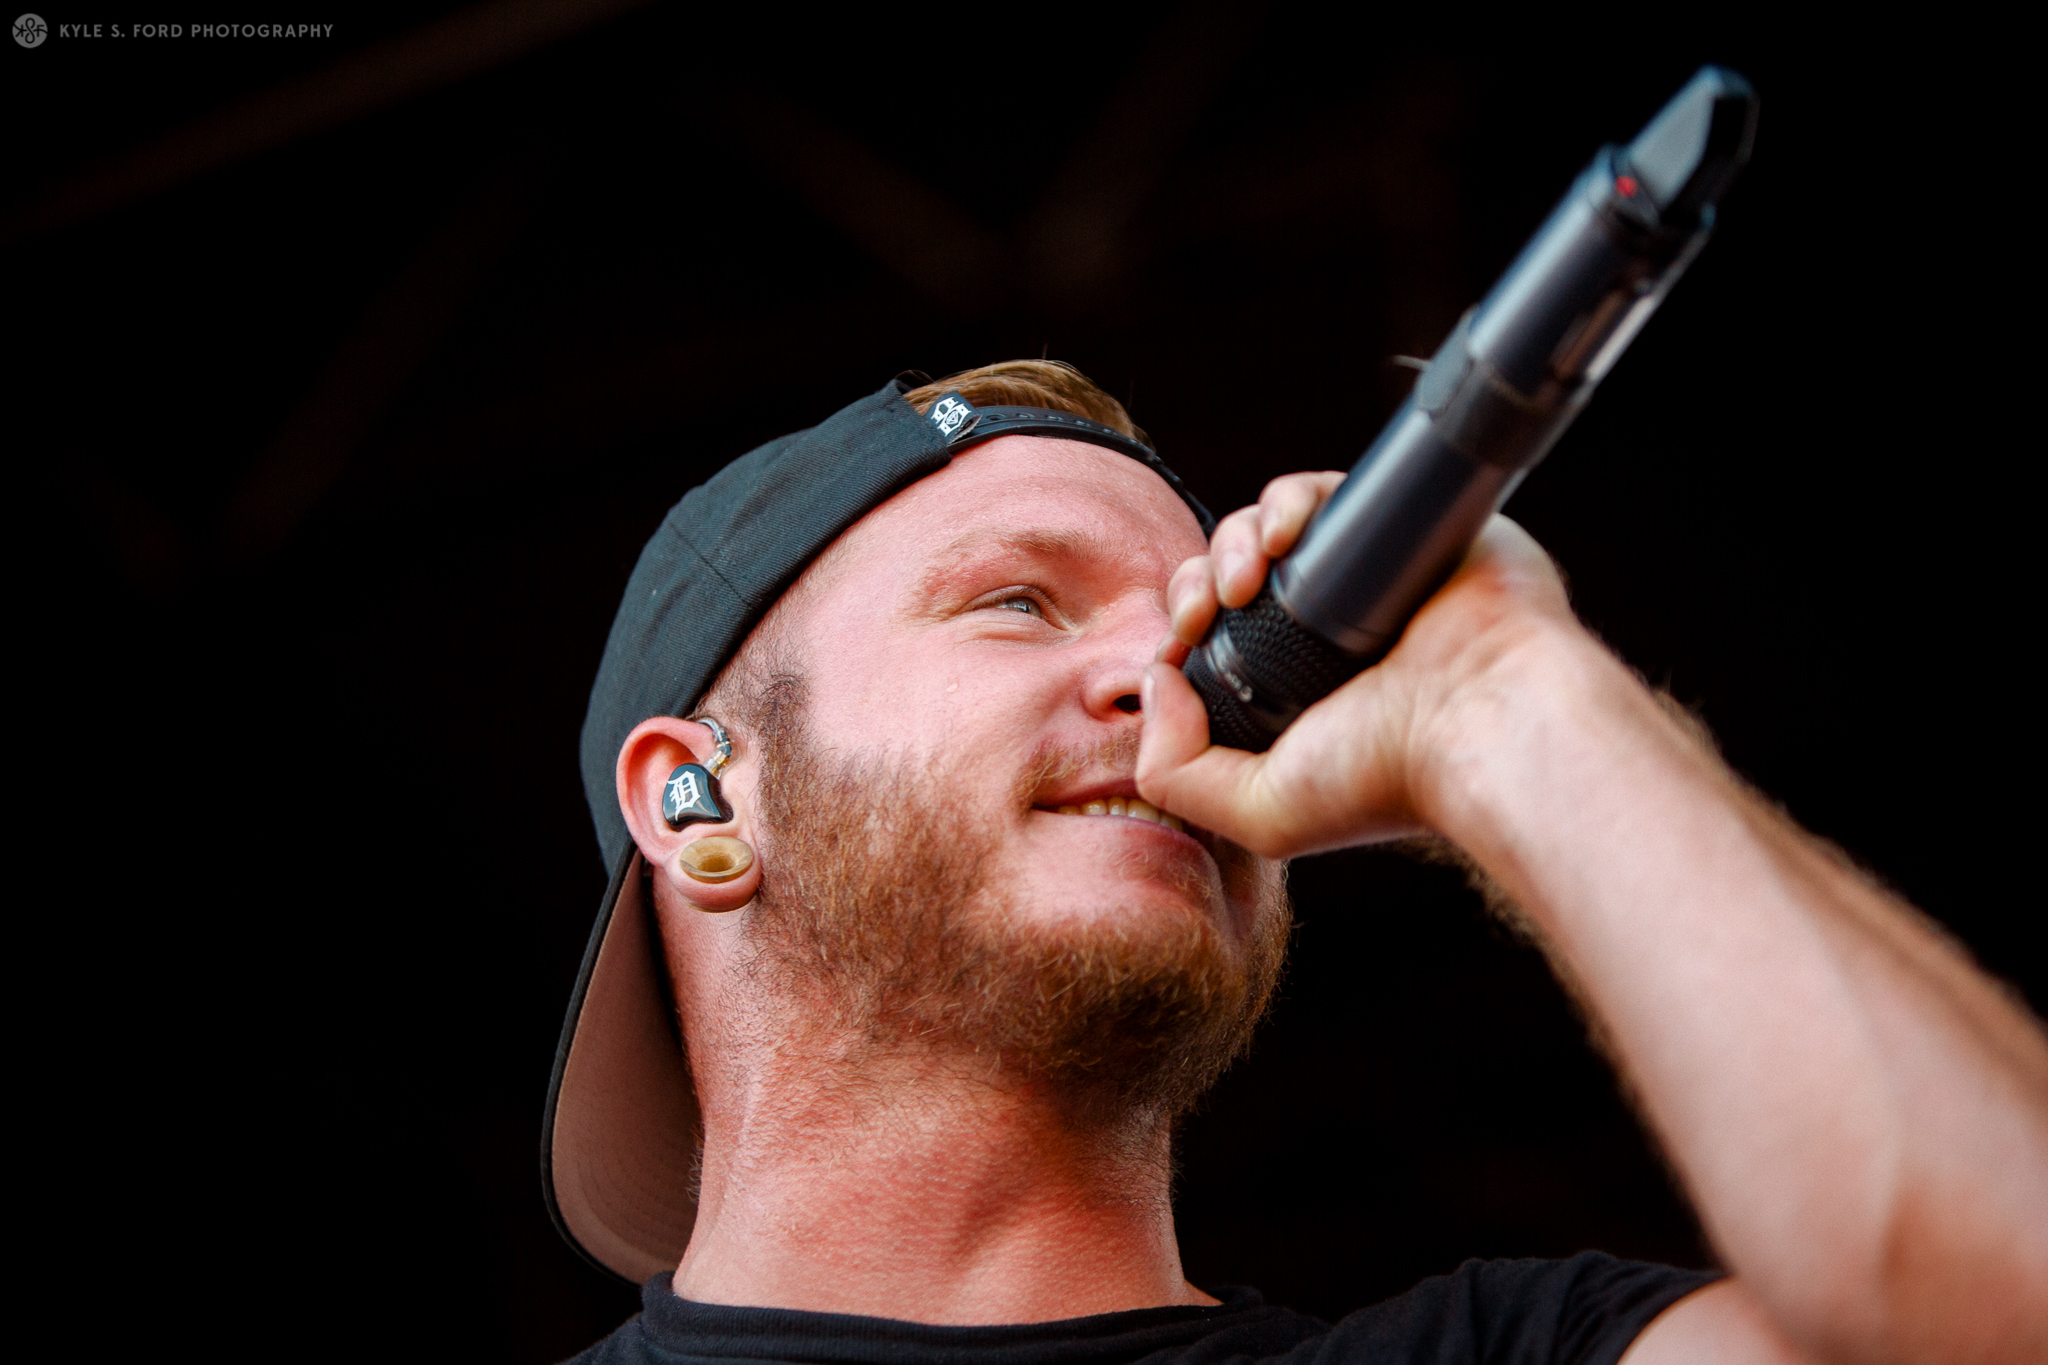 Vans-Warped-Tour-2015-Kyle-Ford_01